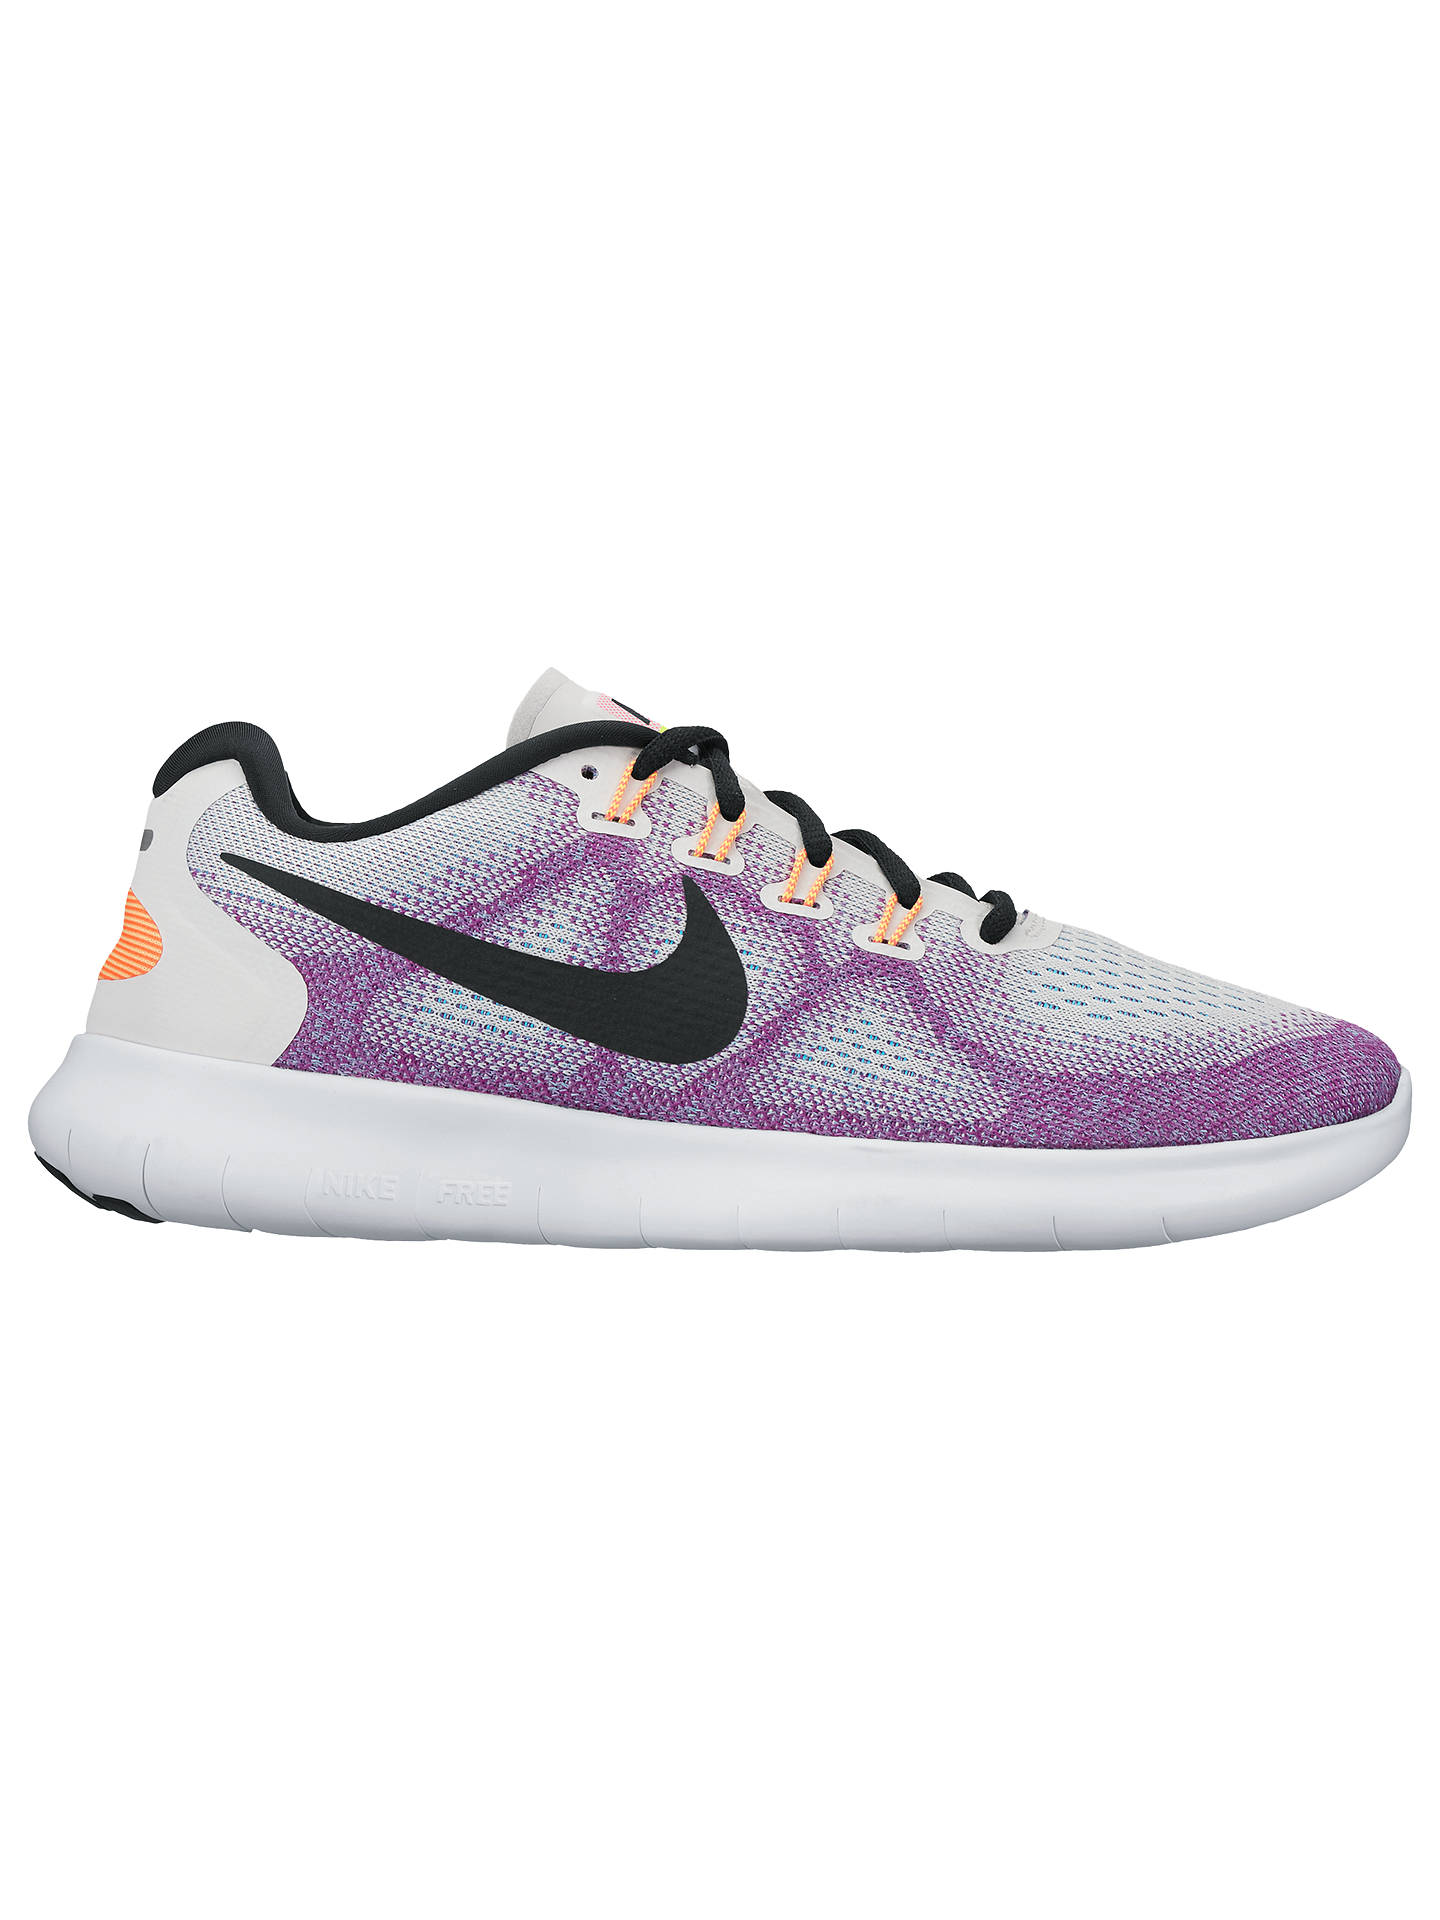 c90ee24496 Buy Nike Free RN 2017 Women's Running Shoes, White/Purple, 4 Online at ...